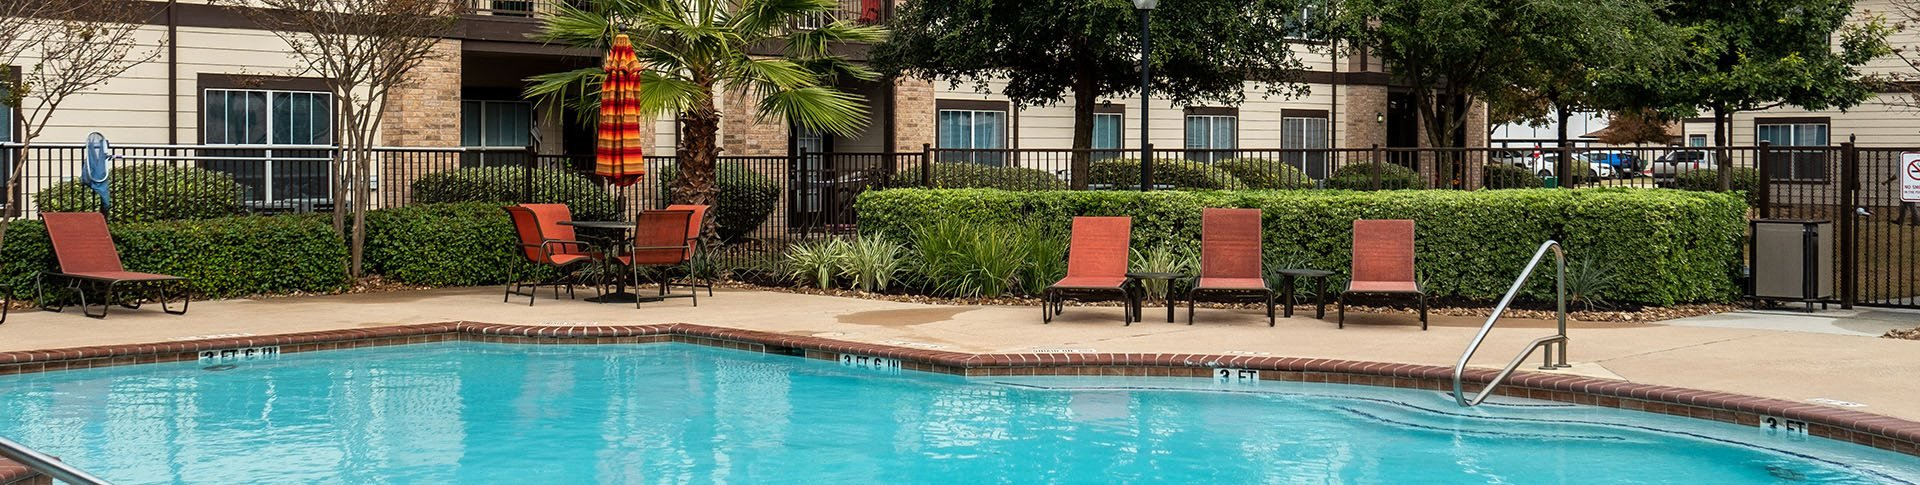 Pool with lounge chairs at La Sierra Apartments